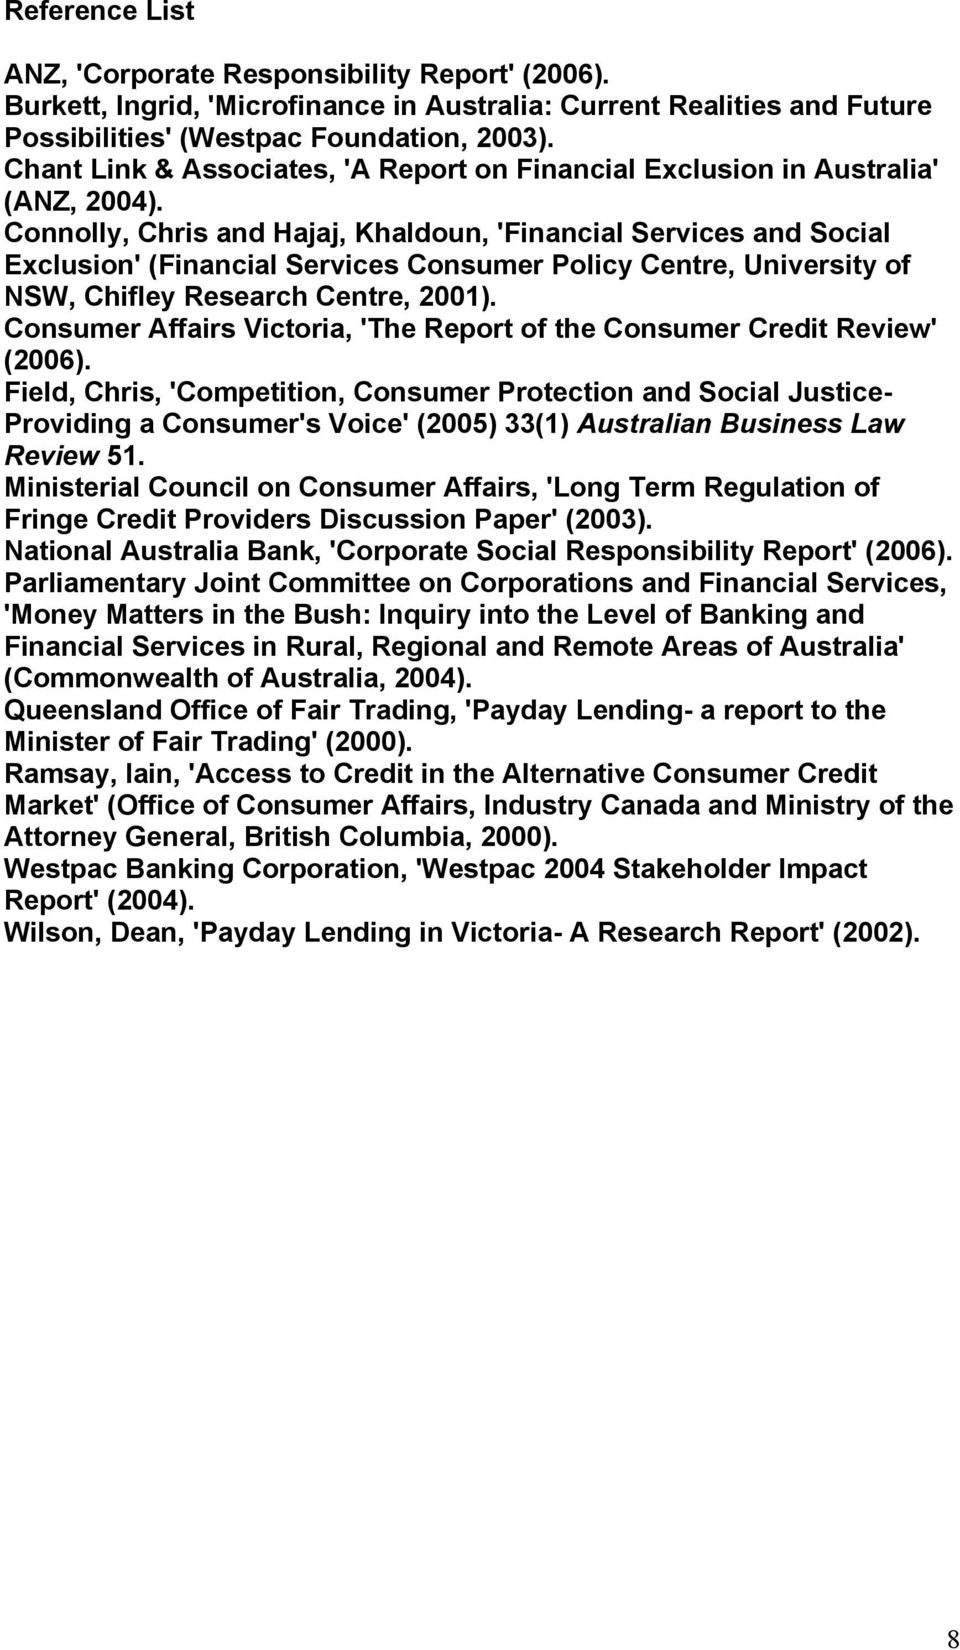 Connolly, Chris and Hajaj, Khaldoun, 'Financial Services and Social Exclusion' (Financial Services Consumer Policy Centre, University of NSW, Chifley Research Centre, 2001).